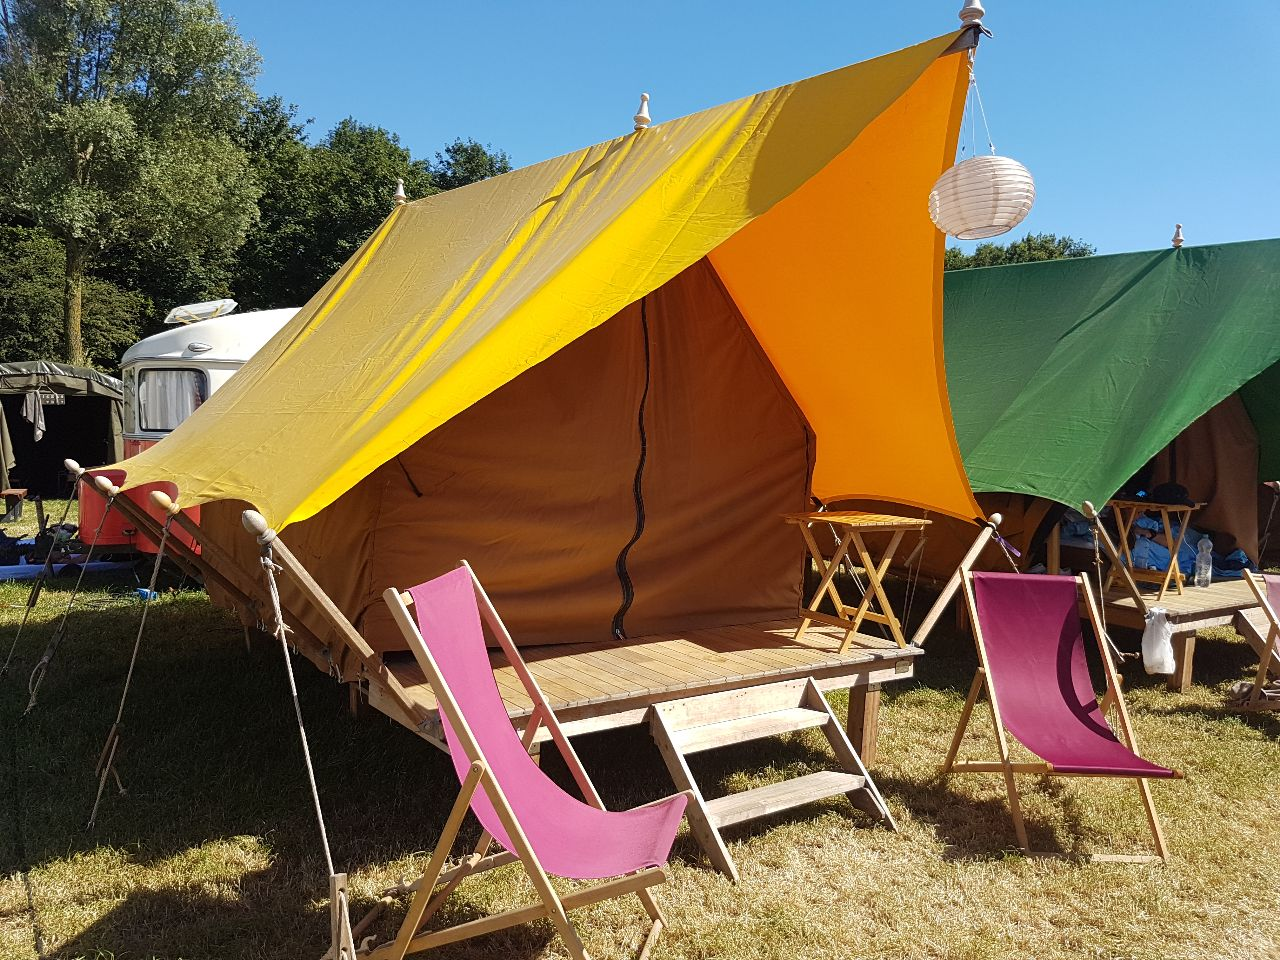 Minilodge - Glamping Campsolutions